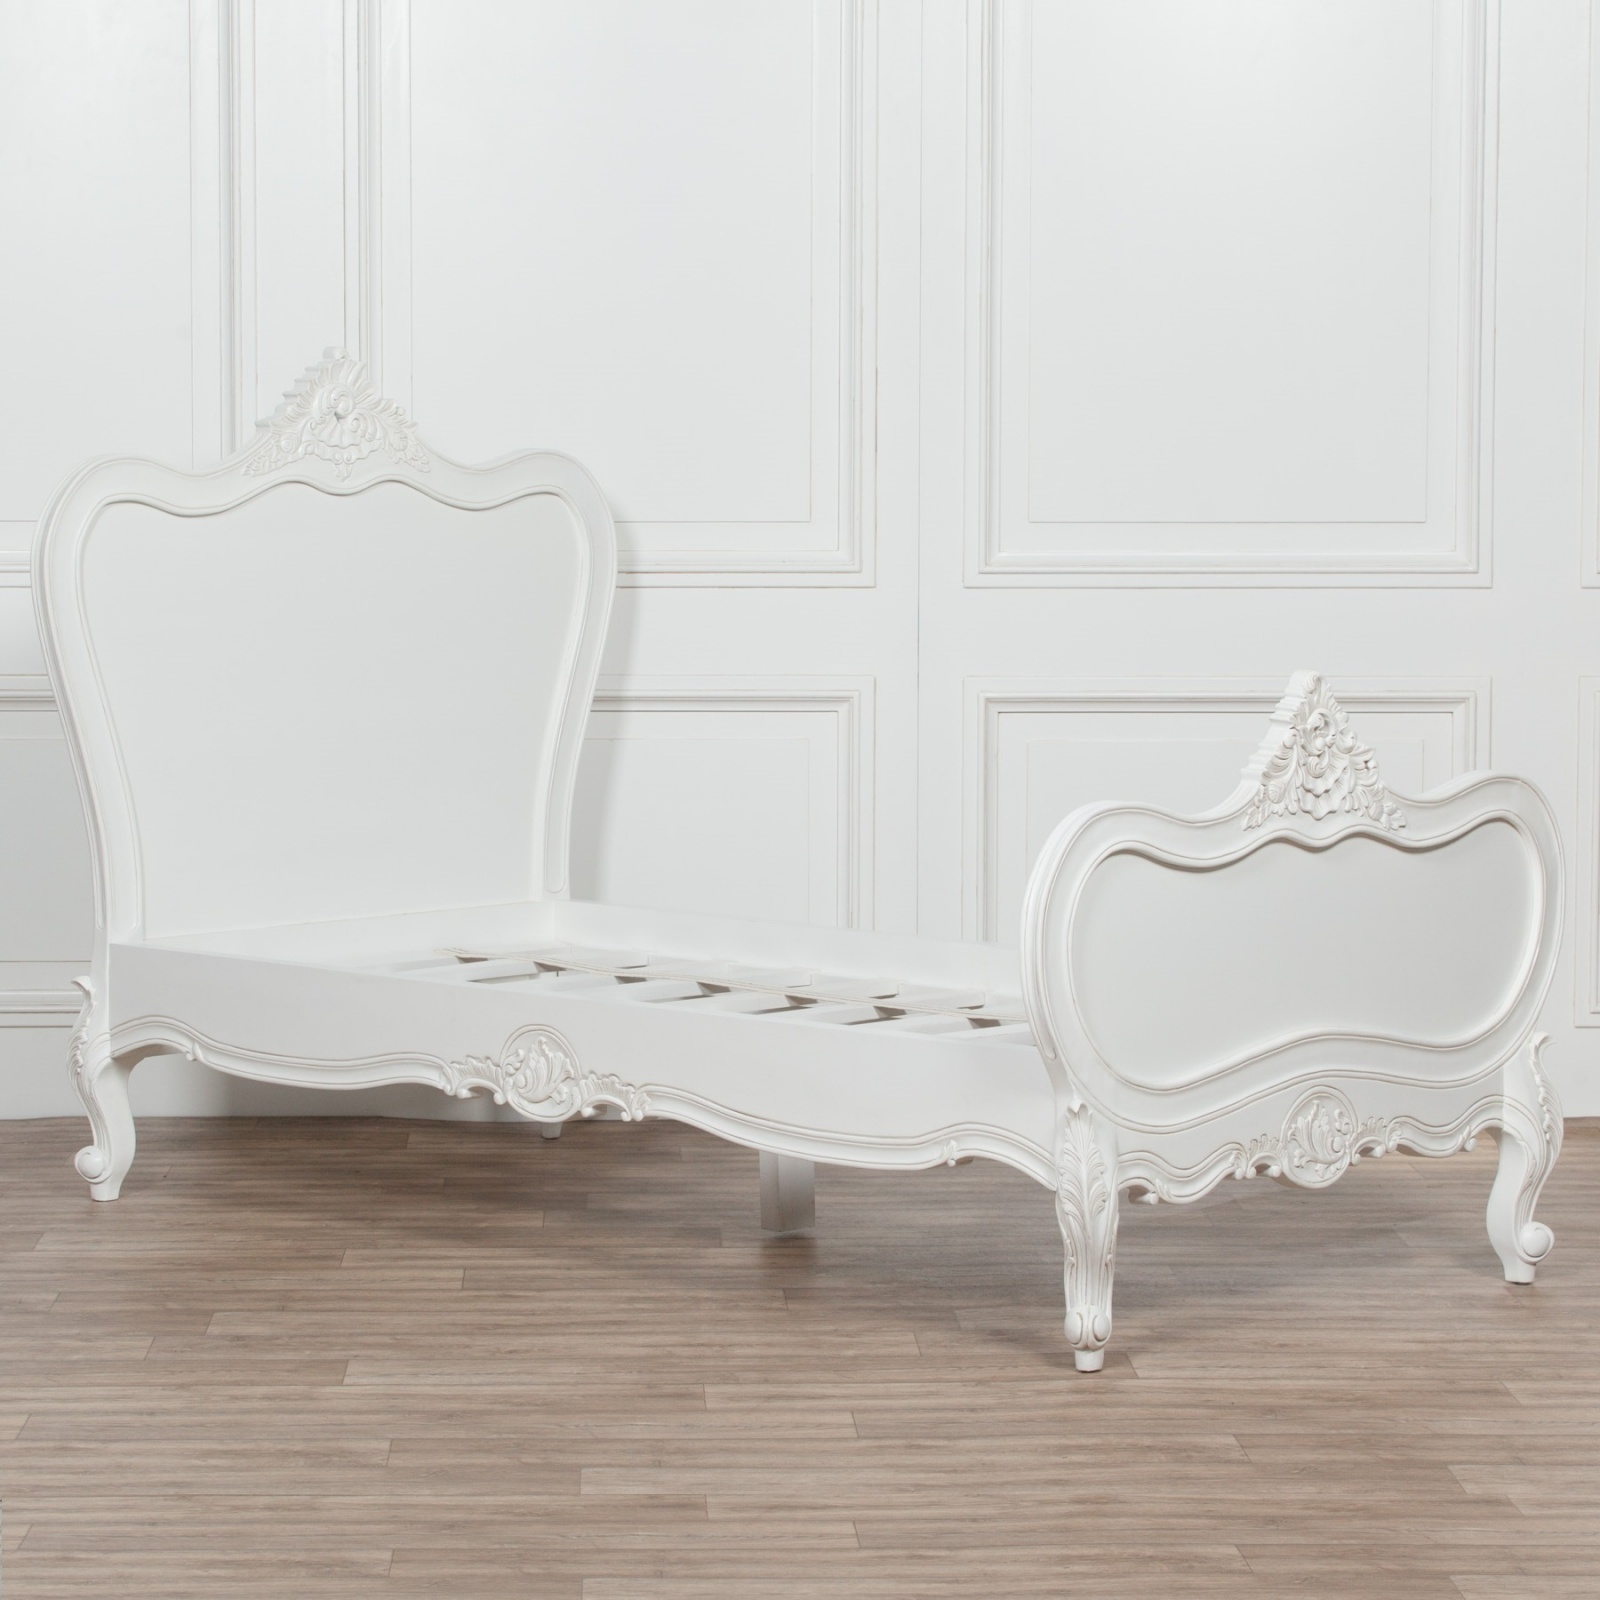 3ft French White Chateau Wooden Single Bed Furniture La Maison Chic Luxury Interiors